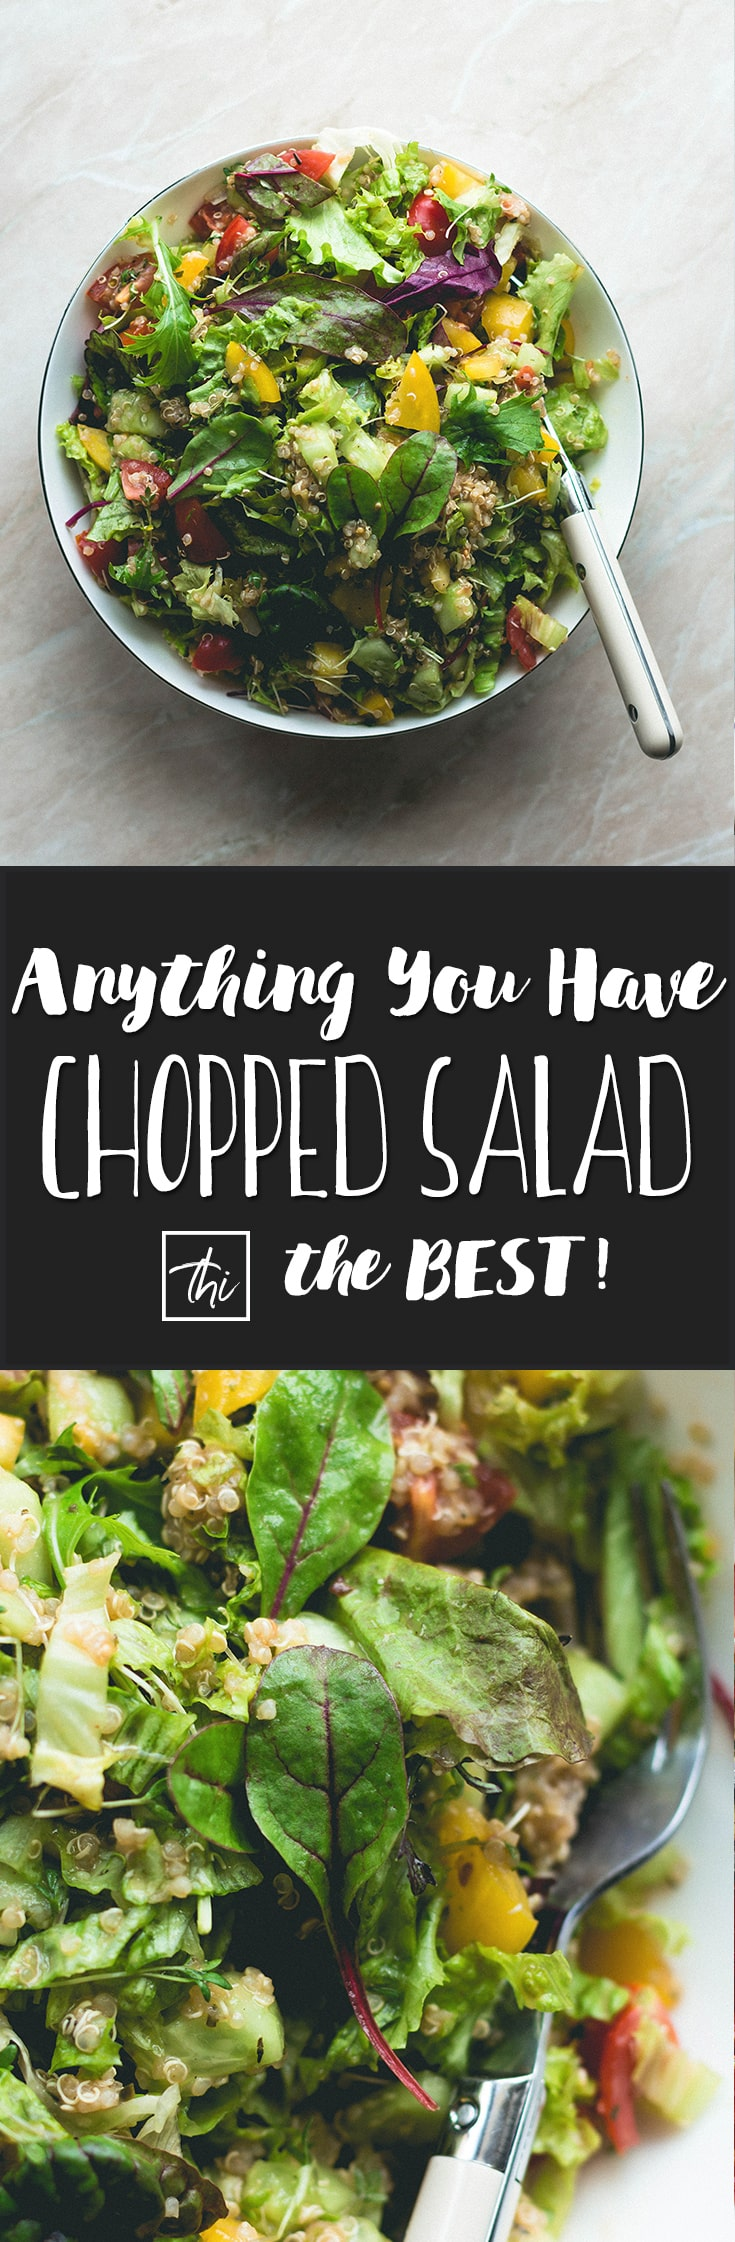 Anything You Have Chopped Salad aka the best whatever-you-have dinner or packed lunch for work or school! Can be made vegetarian or vegan! | thehealthfulideas.com